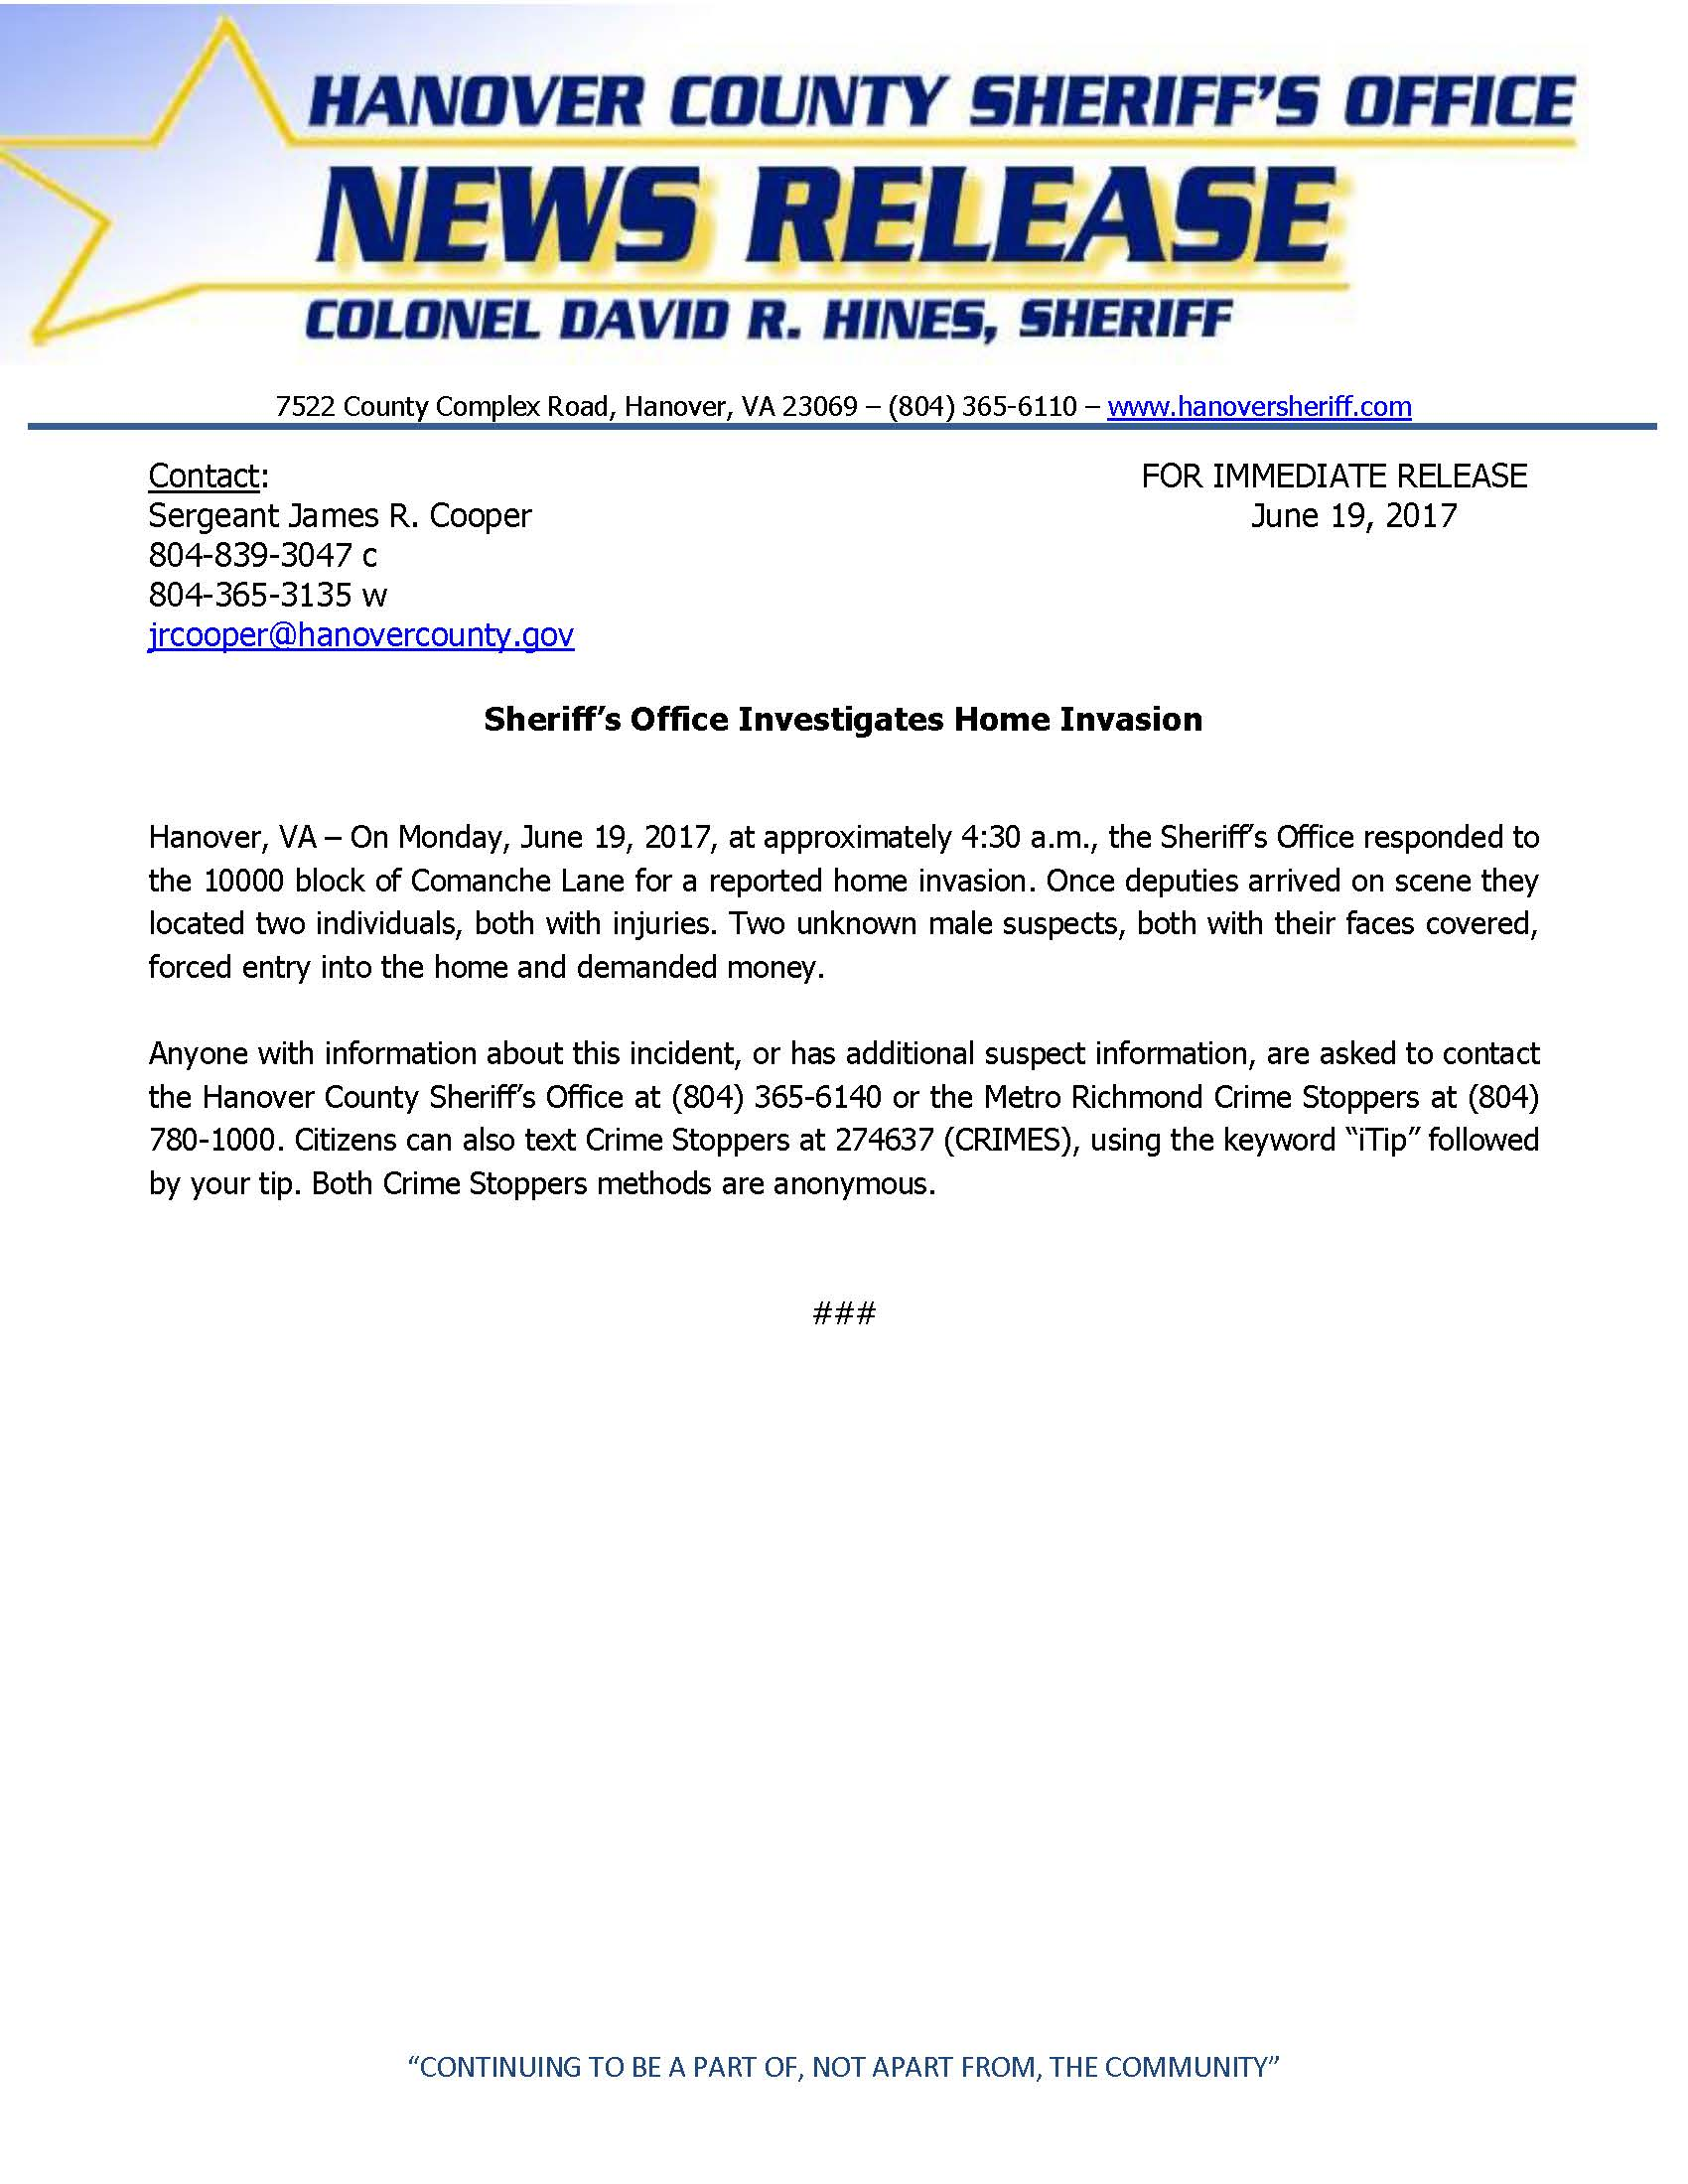 HCSO  Sheriffs Office Investigates Home Invasion June 2017